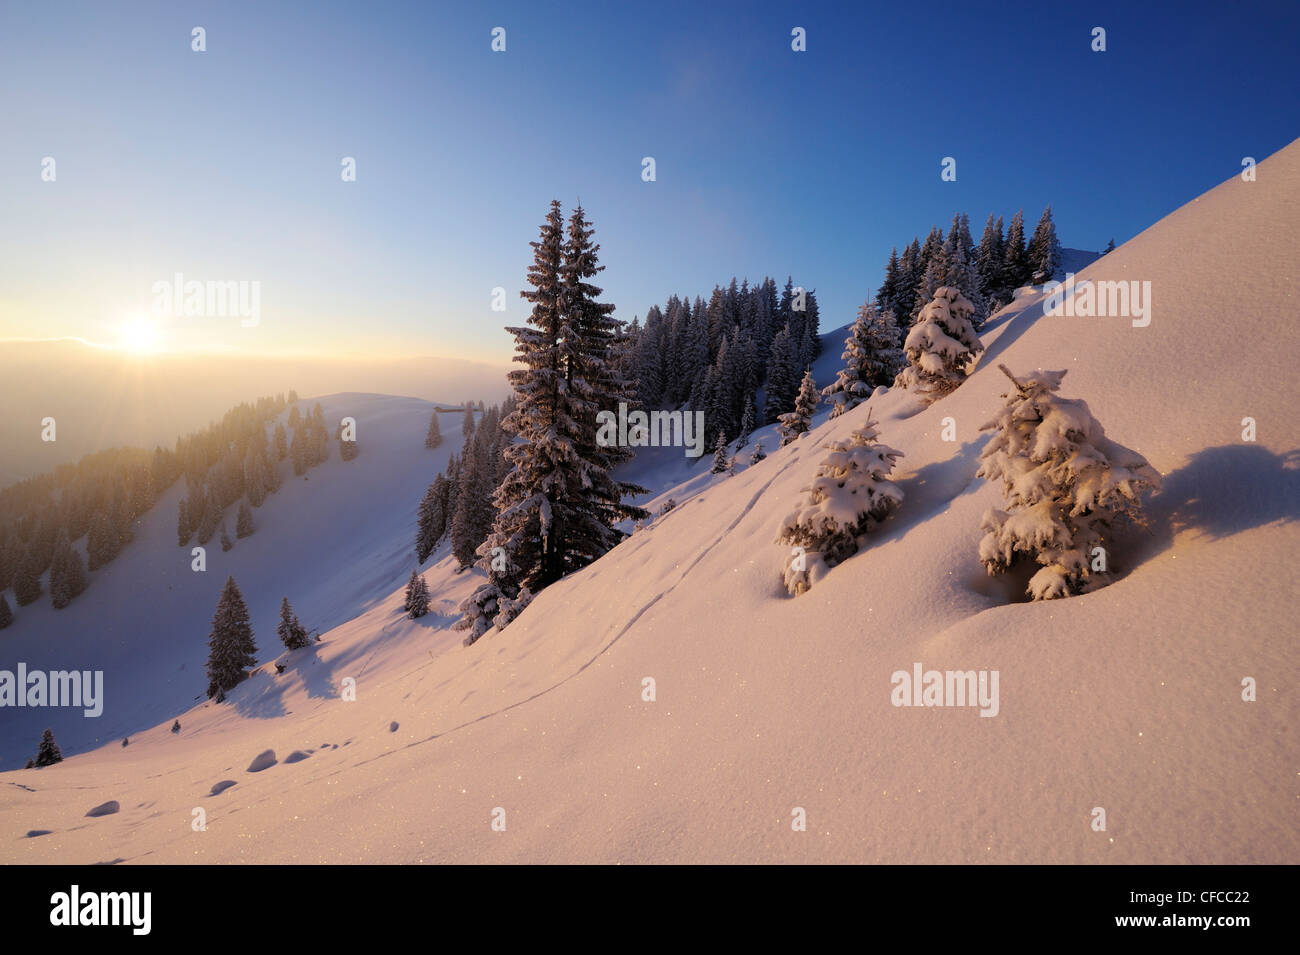 Snow covered spruces and slopes, Wallberg, Bavarian alps, Upper Bavaria, Bavaria, Germany, Europe Stock Photo